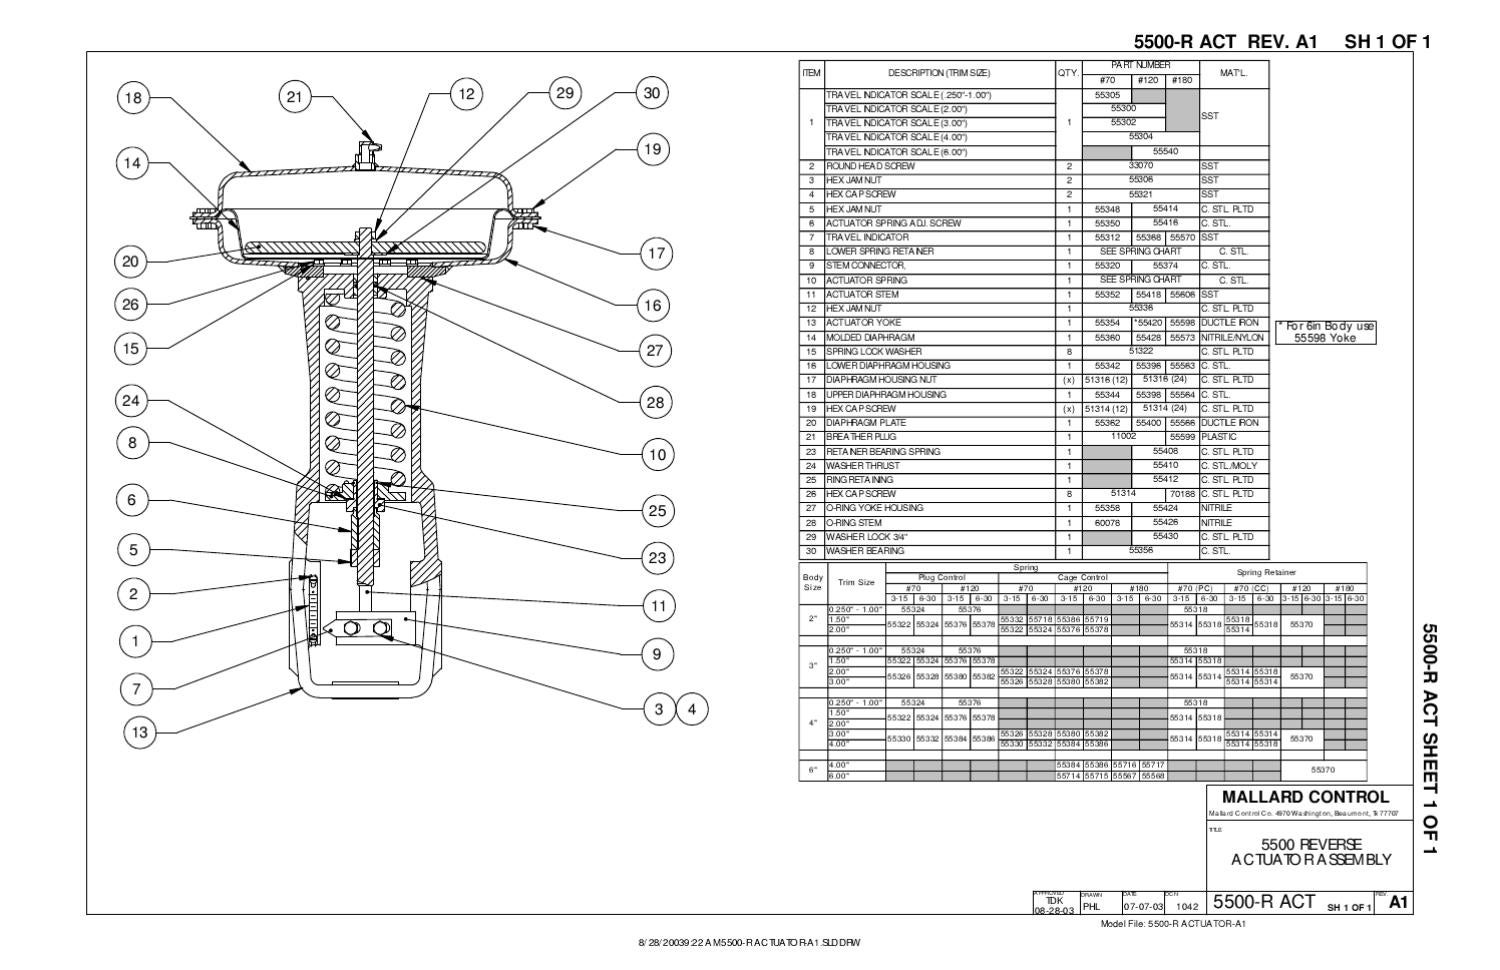 5500 Actuator Reverse Schematic by RMC Process Controls